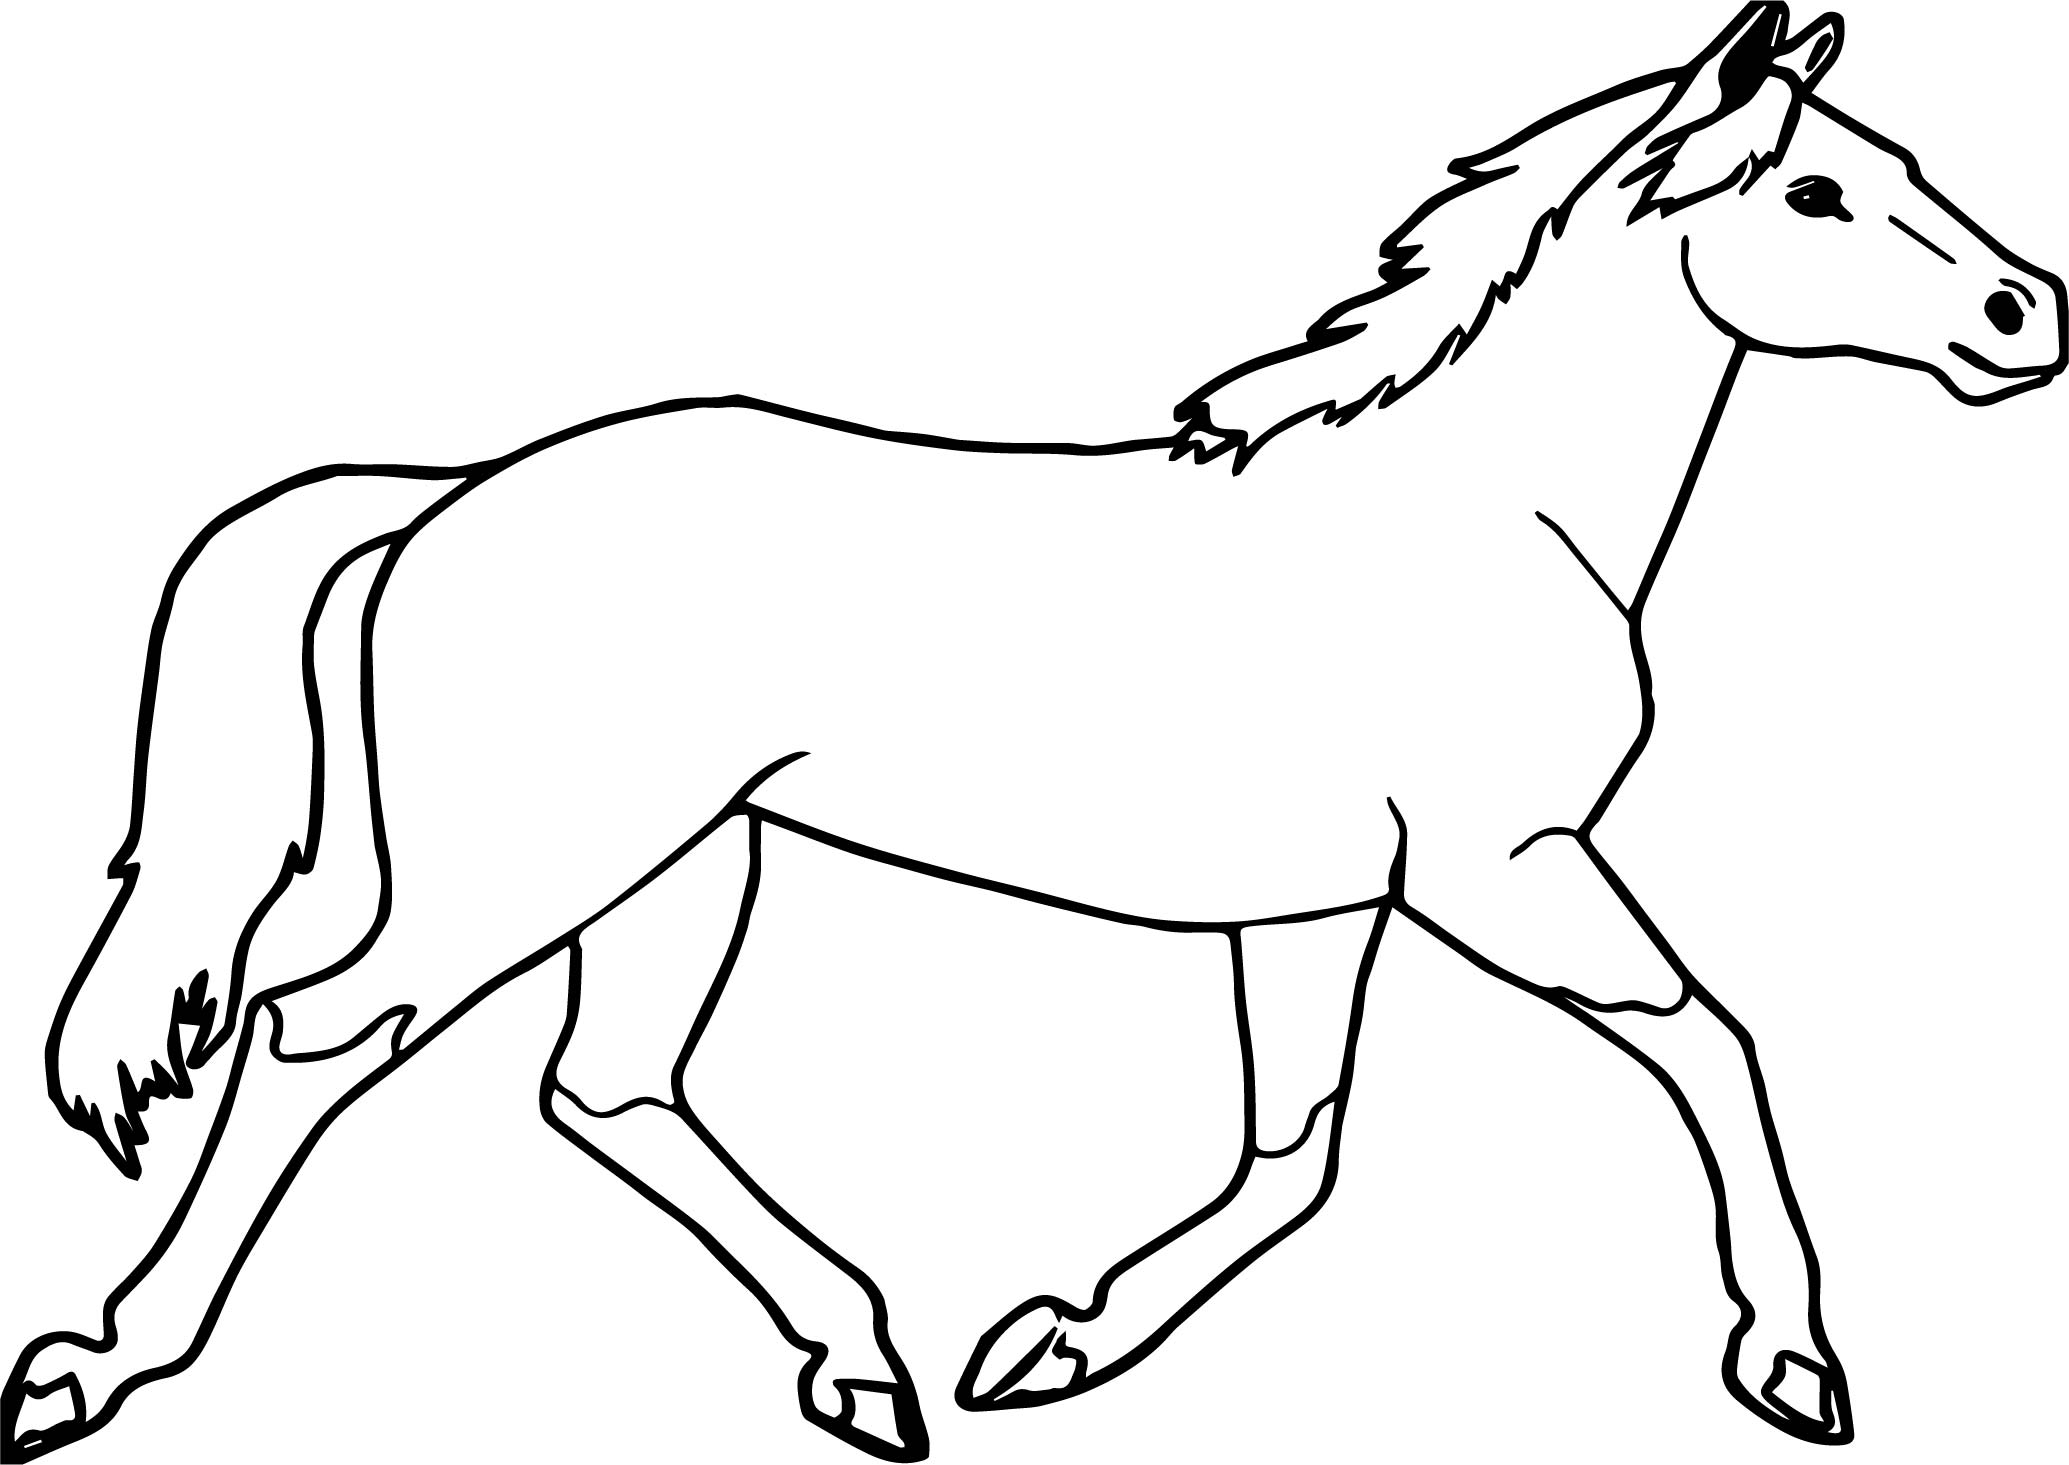 Jogging arabian horse coloring page for Horse pages to color